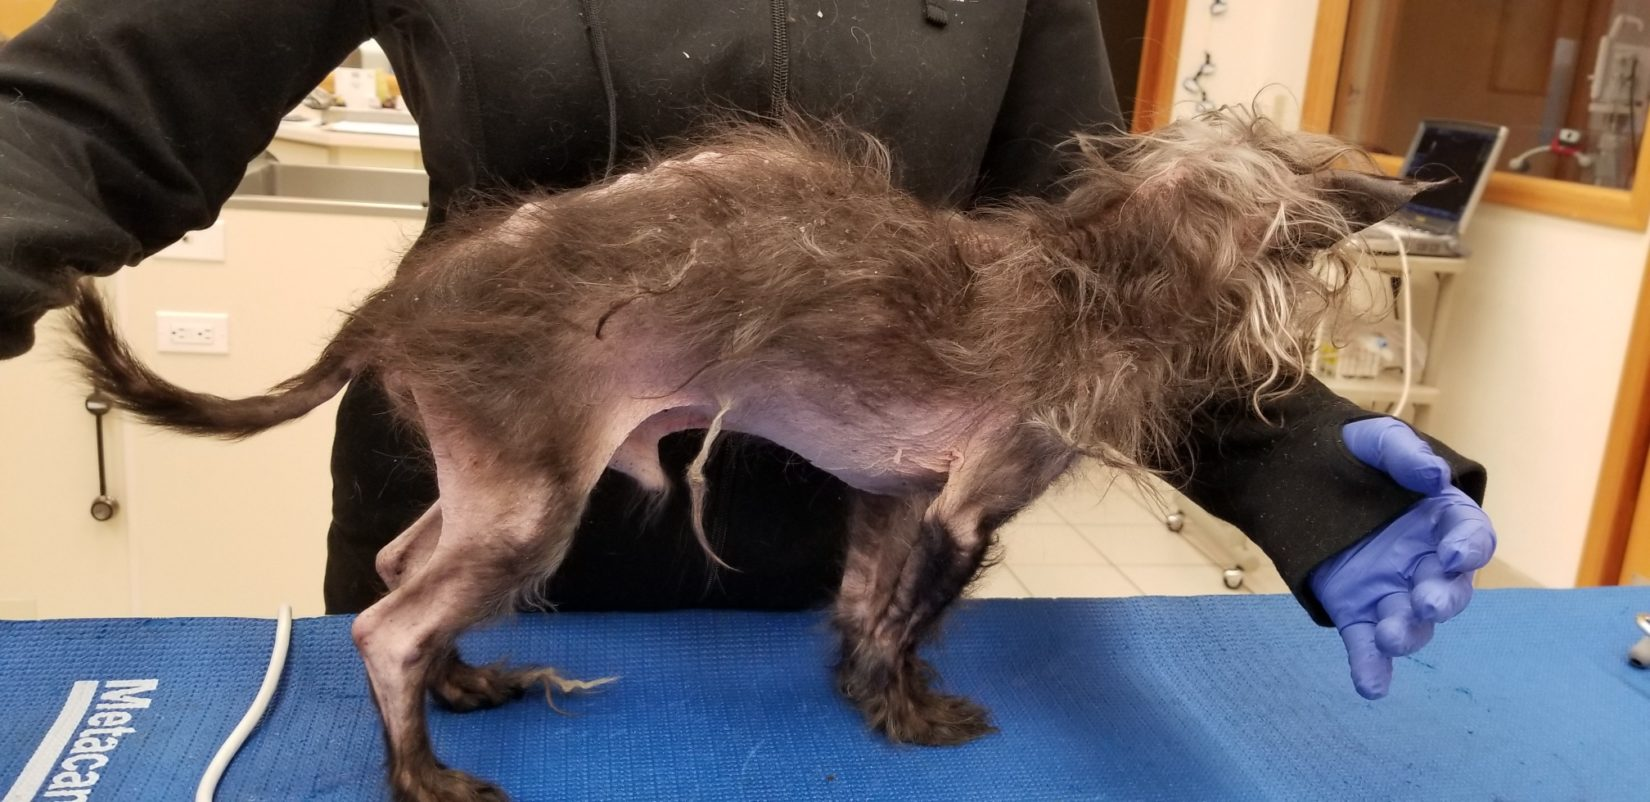 Hoss, a 17-year-old Chinese Crested, is examined by veterinarians.